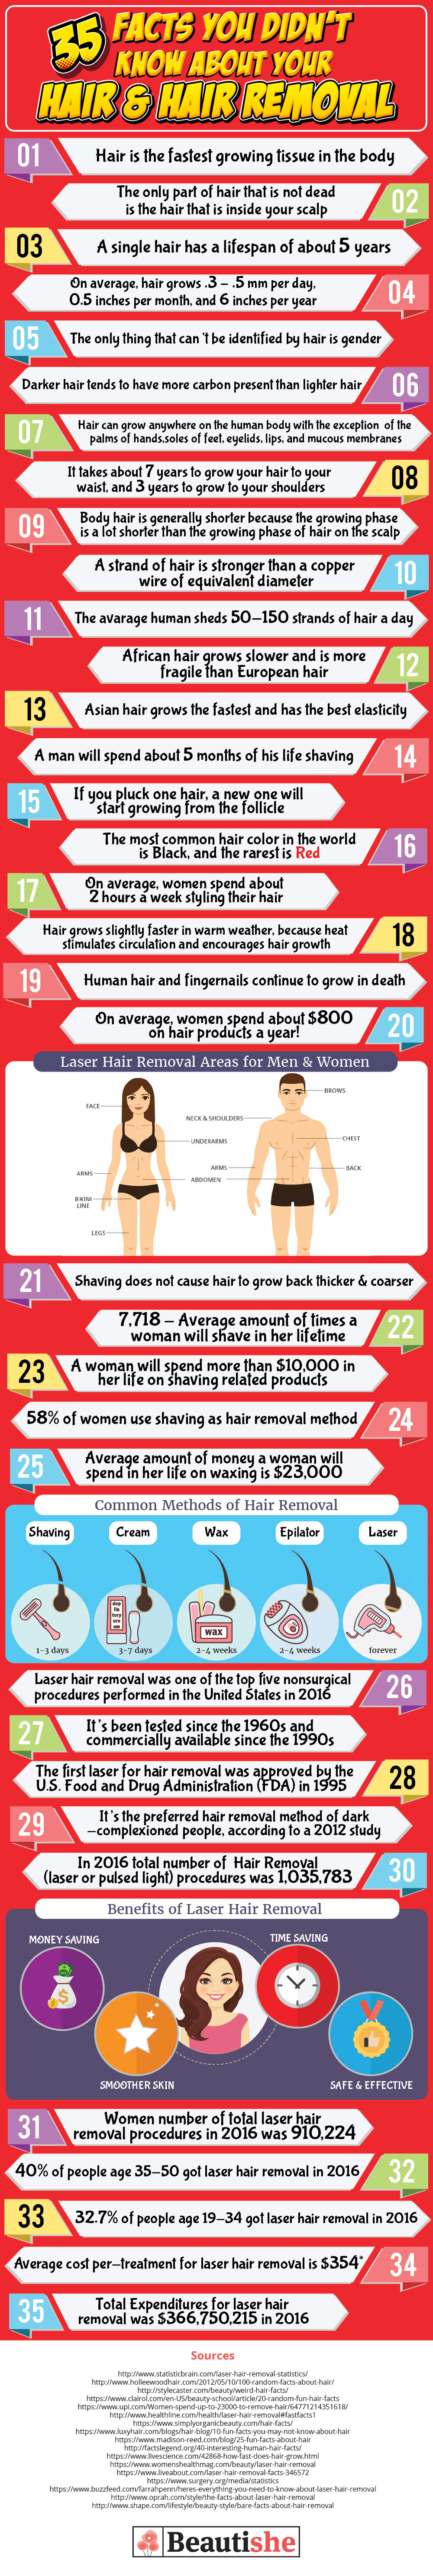 All You Want to Know About Hair and Hair Removal - Infographic